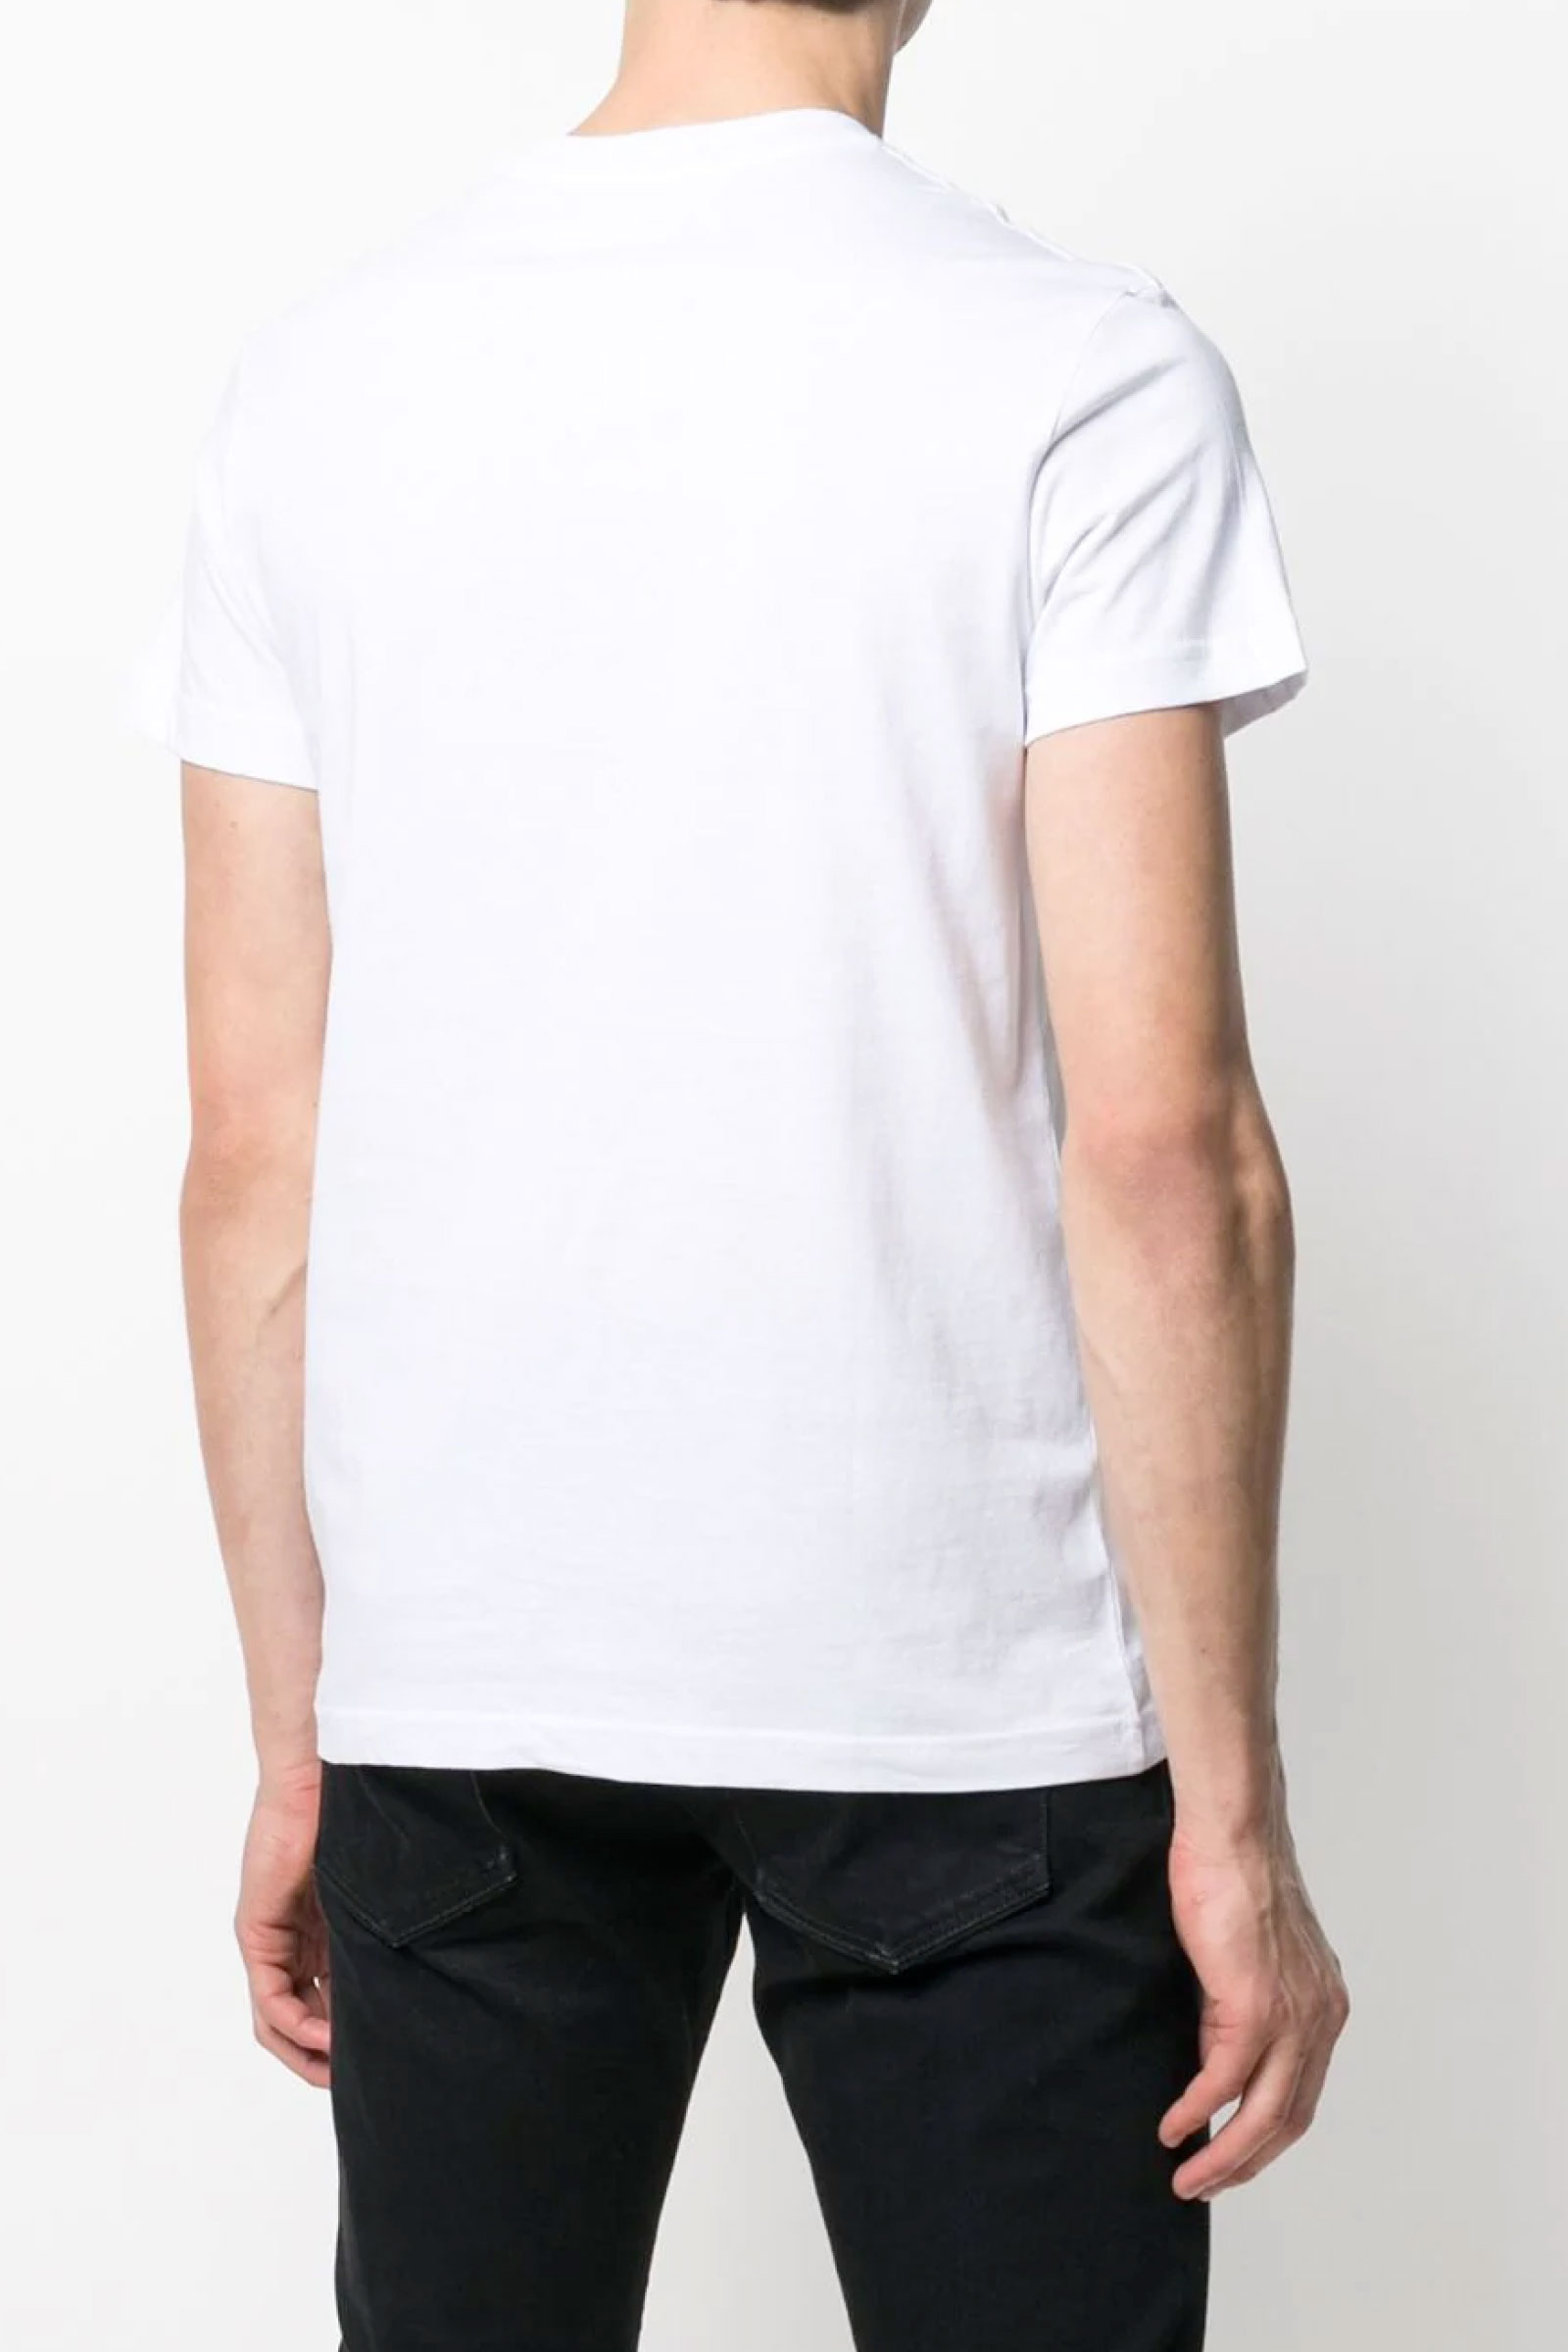 VERSACE JEANS COUTURE T-Shirt Uomo VERSACE JEANS COUTURE | T-Shirt | B3GWA7TD303193